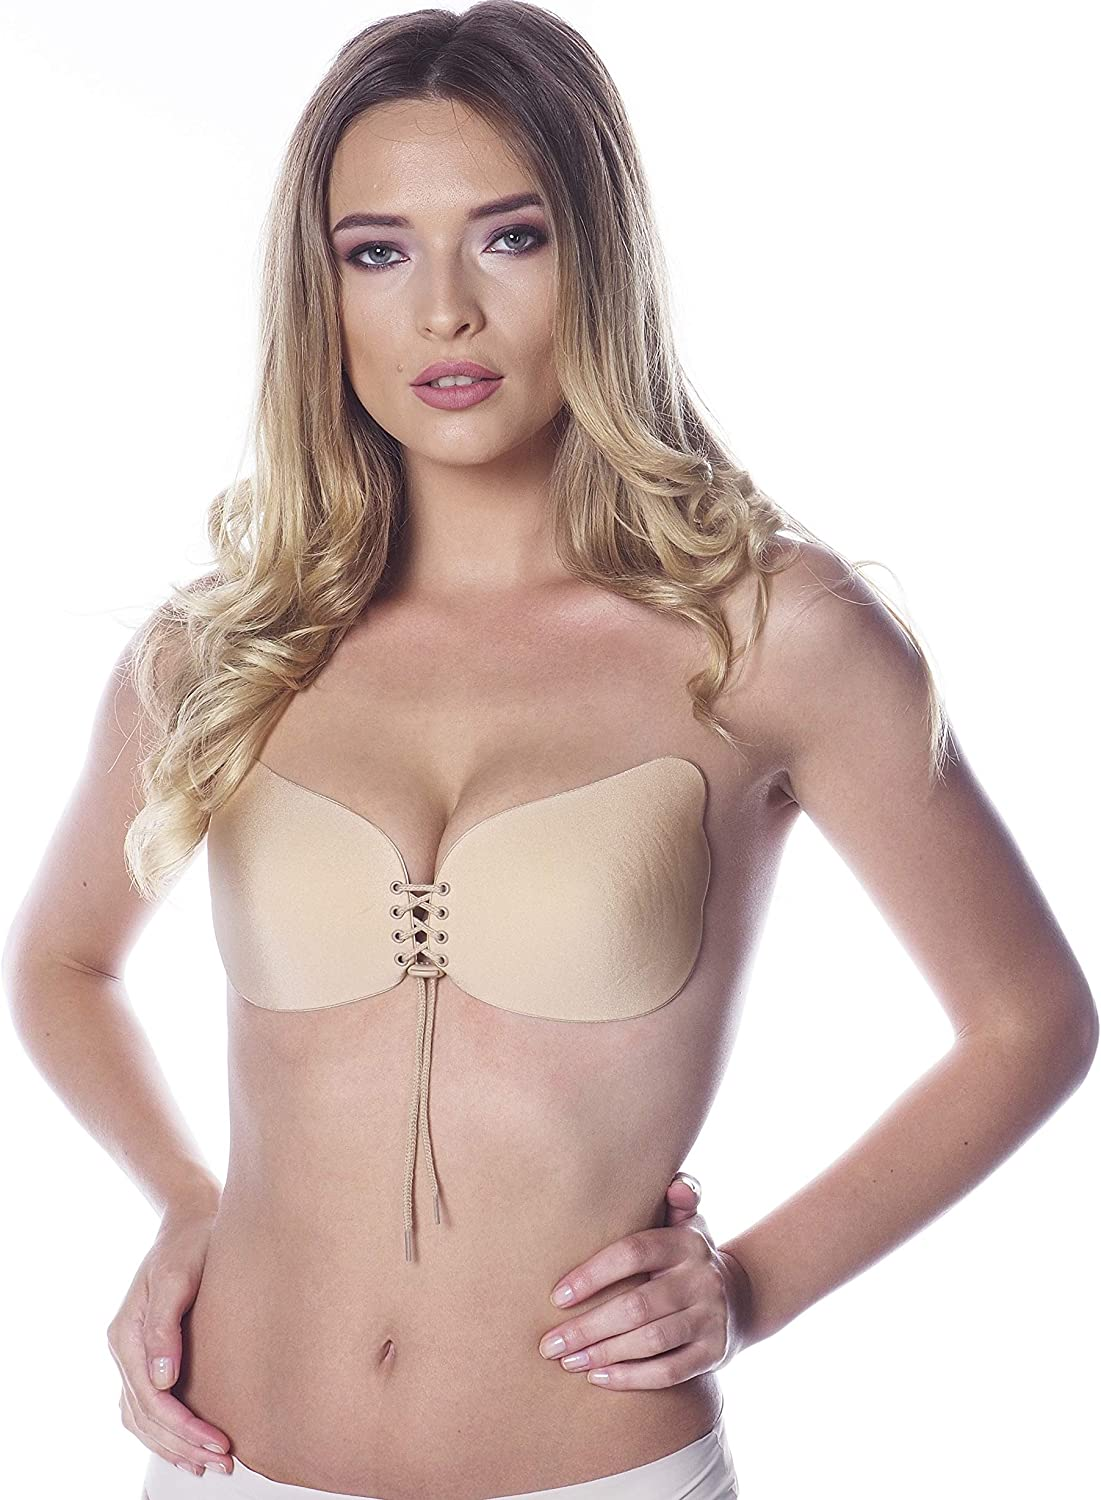 Stick on Bra Push Up - Strapless Sticky Backless Invisible Bra - Adhesive Silicone Lift Up Bra